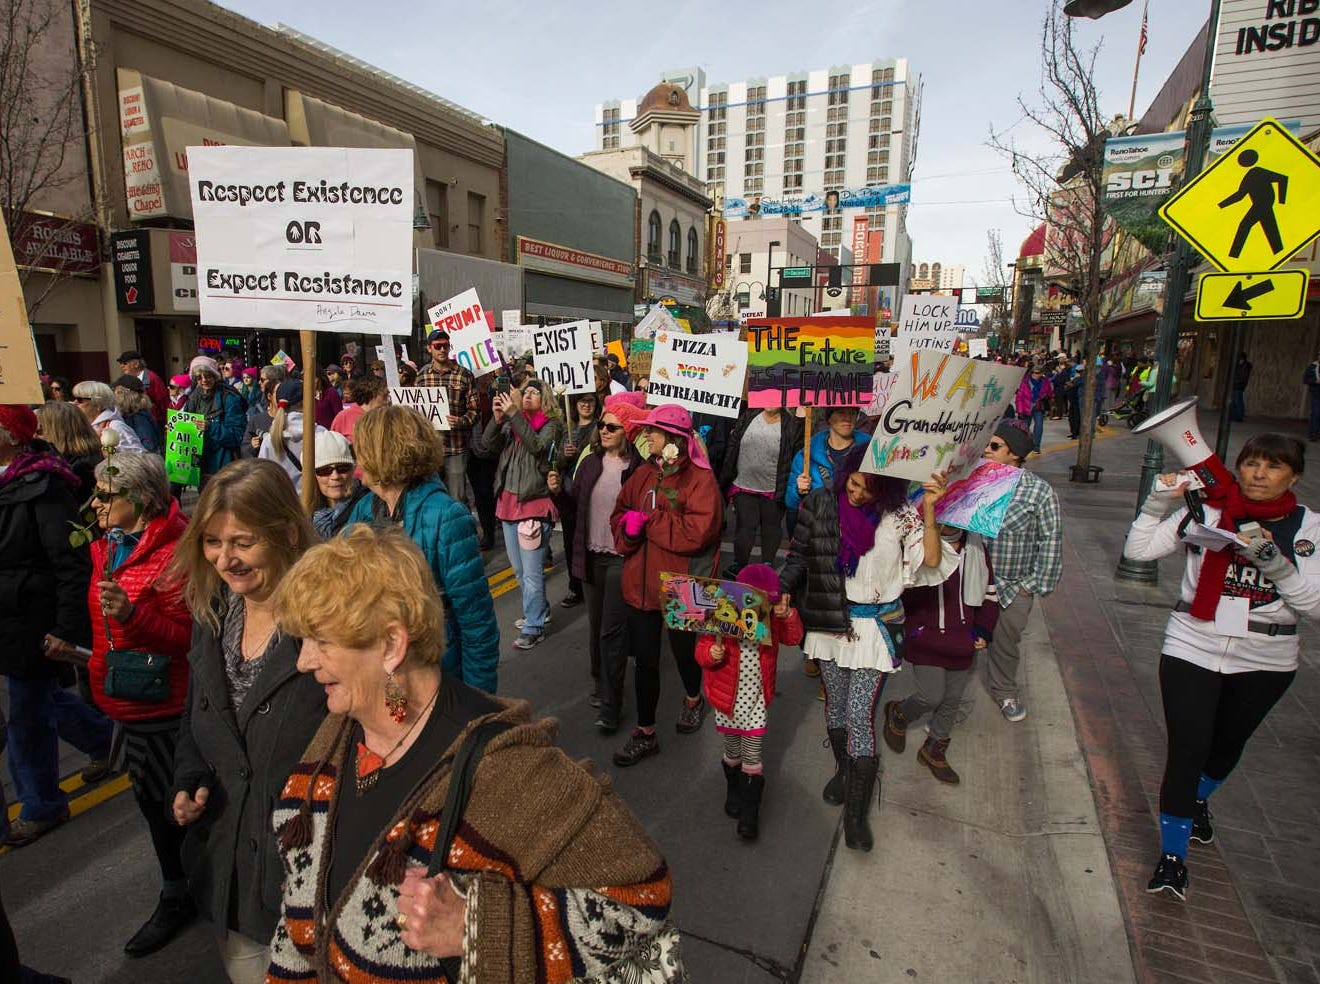 A photograph taken during the 3rd Annual Reno Women's March in downtown Reno on Saturday, January 19, 2019.